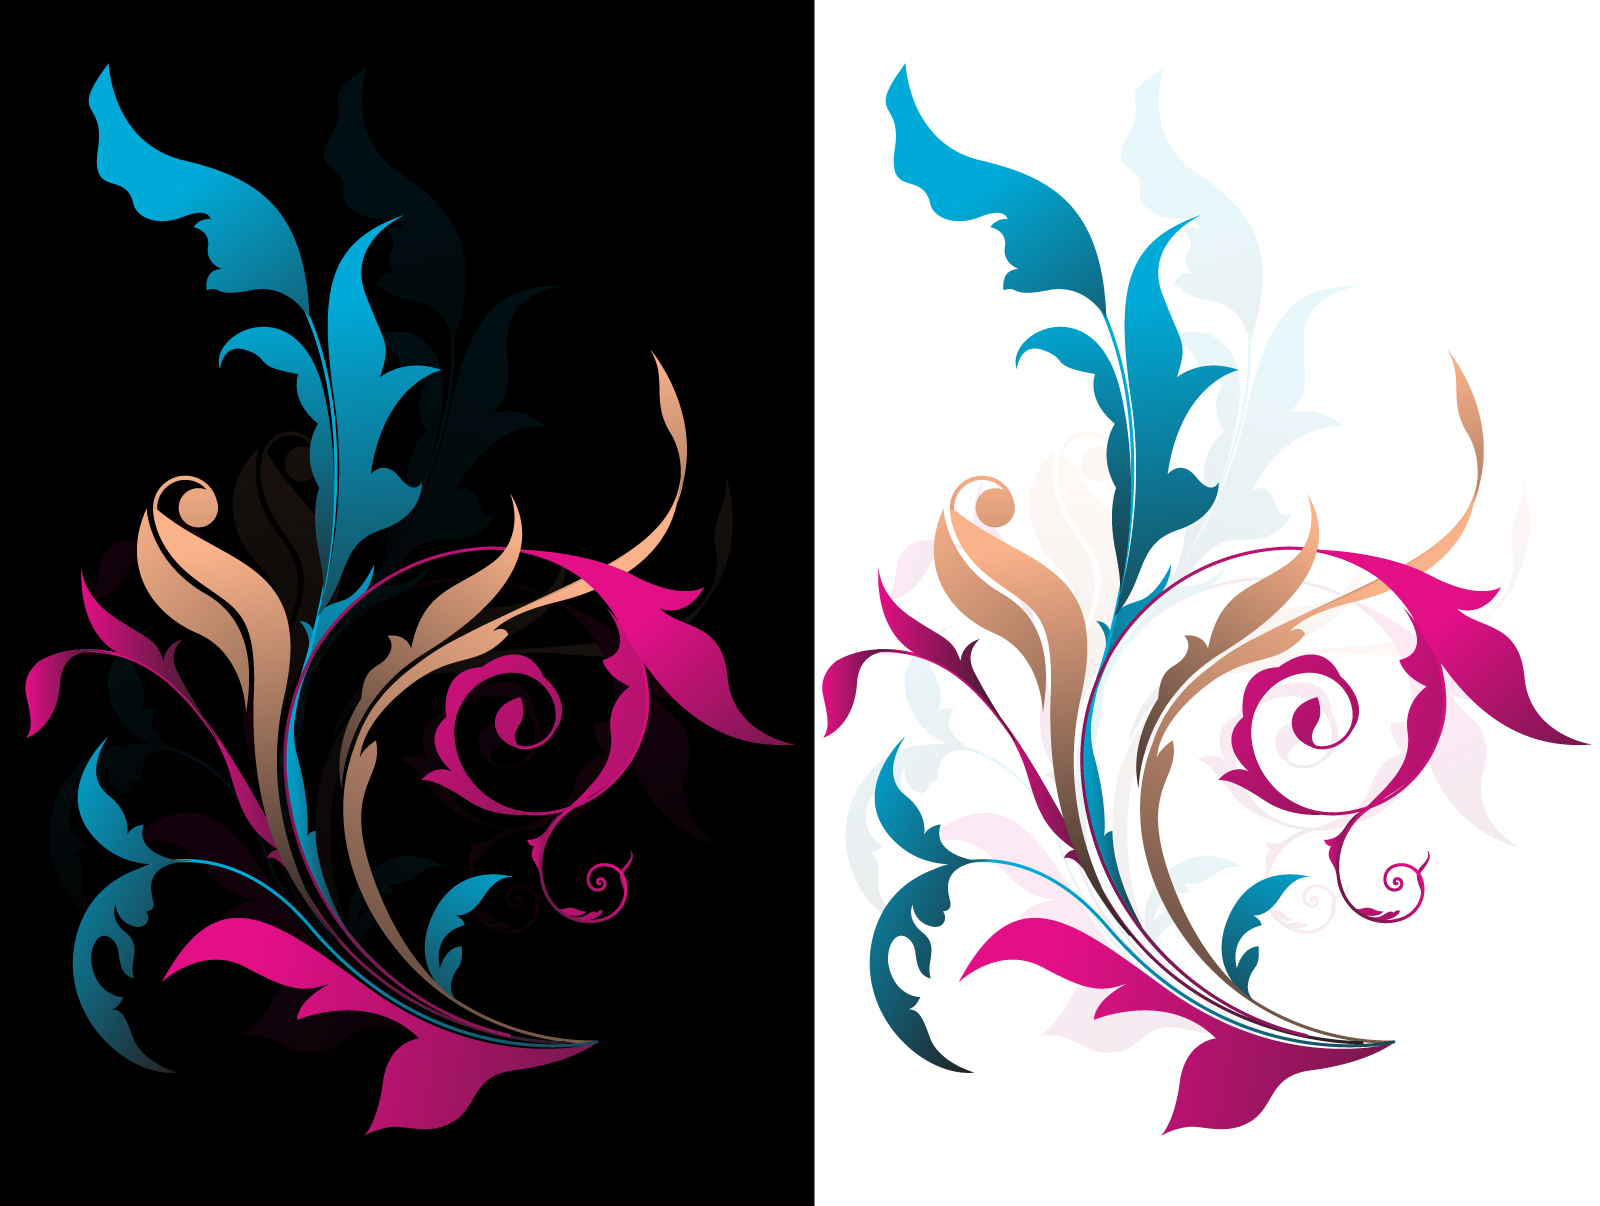 Free Photoshop Vector Graphics